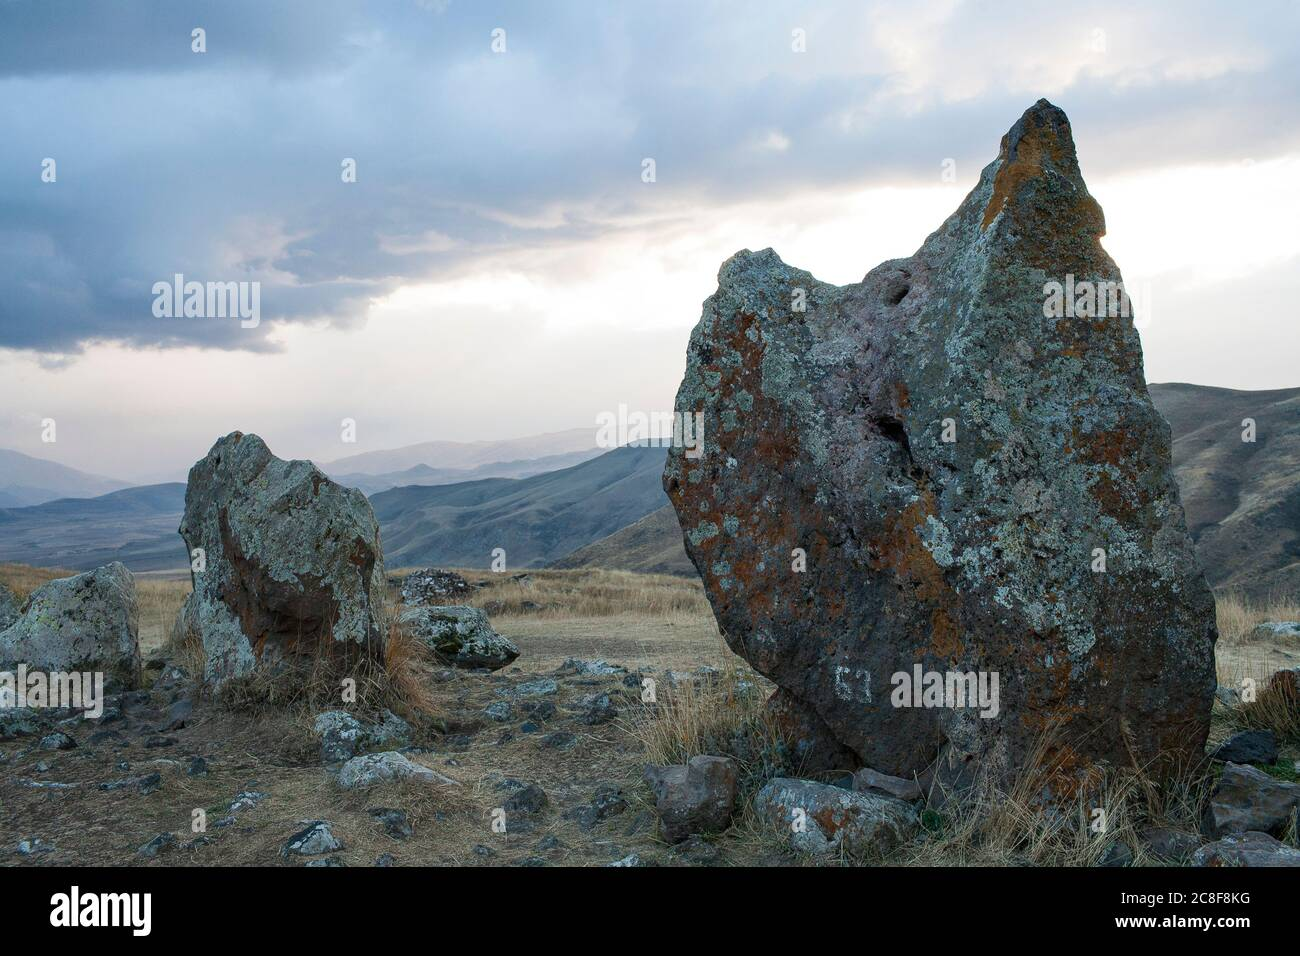 Carahunge, set on a dramatic plain, is a prehistoric archaeological site near the town of Sisian in the Syunik Province of Armenia. Stock Photo